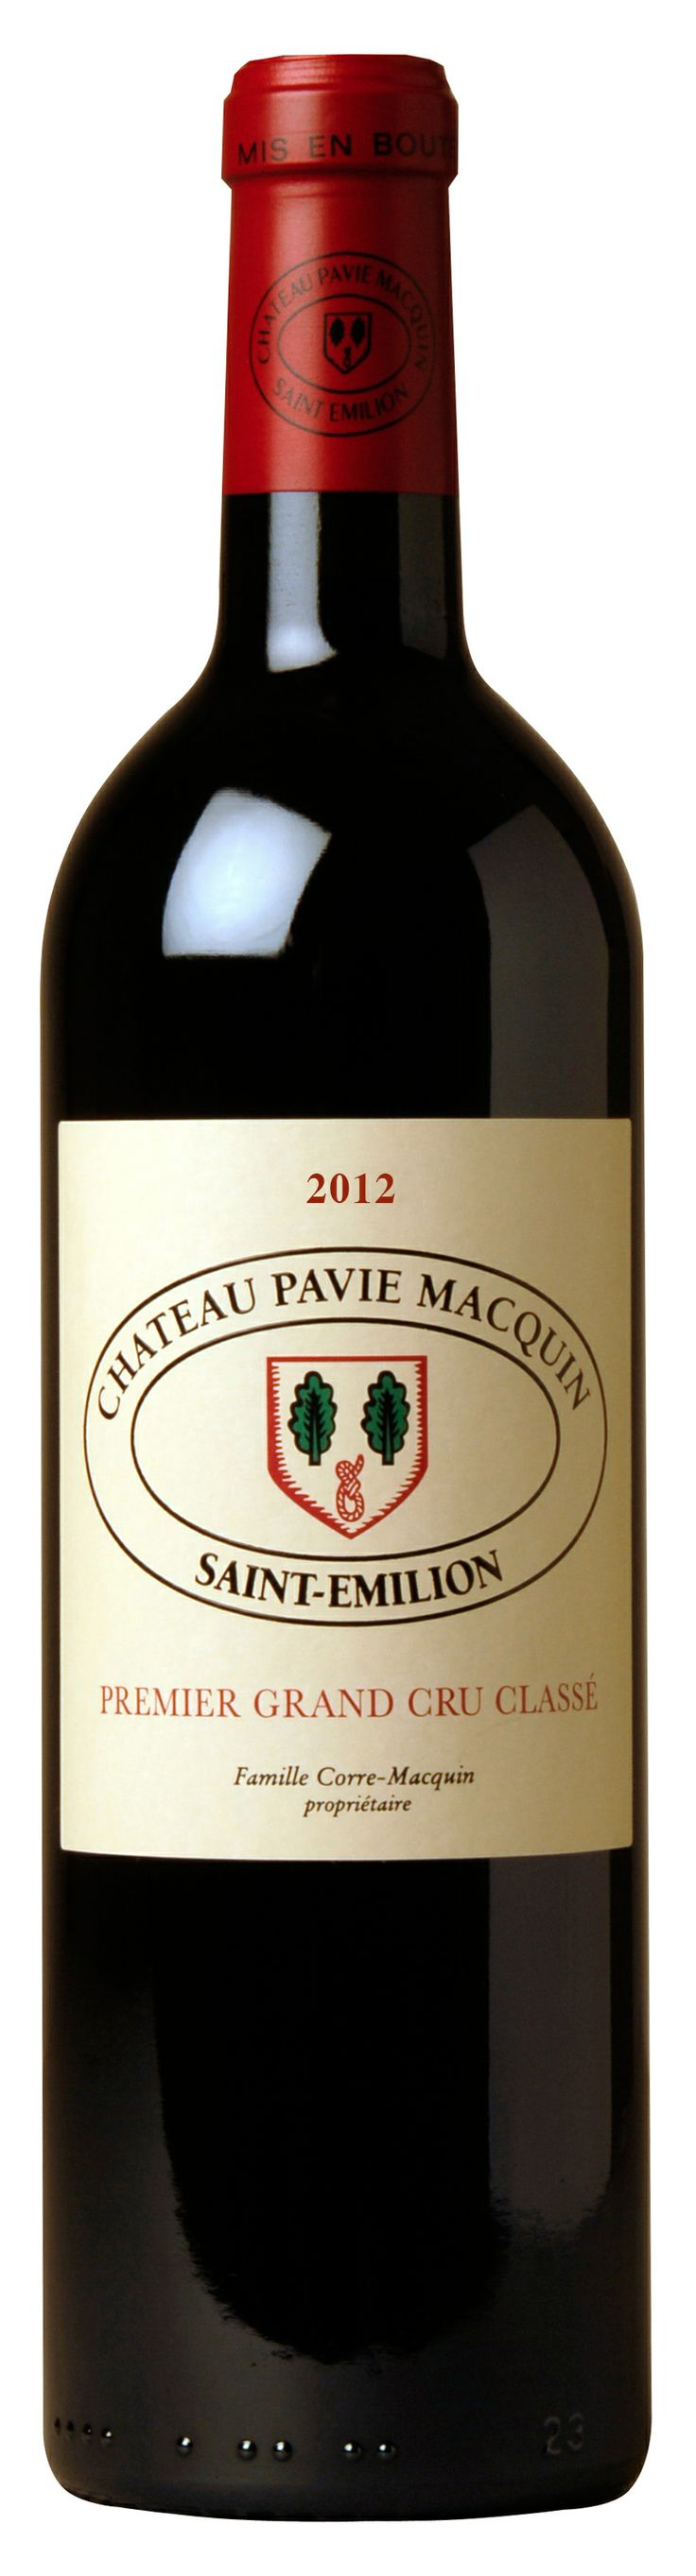 CHATEAU PAVIE MACQUIN 2012 Finement boisé, on y trouve des fruits noirs, des notes de  poivre vert et souple, les tanins sont fermes. Long en bouche, bien conçu qui a besoin de temps en bouteille avant qu'il ne soit prêt à être apprécié.  Finely wooded, there are black fruit, hints of green pepper and supple tannins are firm. Long finish, well designed needs time in bottle before it is ready to be enjoyed.  精致的木香,我们能闻到黑色果香,绿胡椒香,口感柔顺,单宁紧致。口感悠长,需要在瓶中停留一些时间以便于我们只在它最佳状态时品尝。